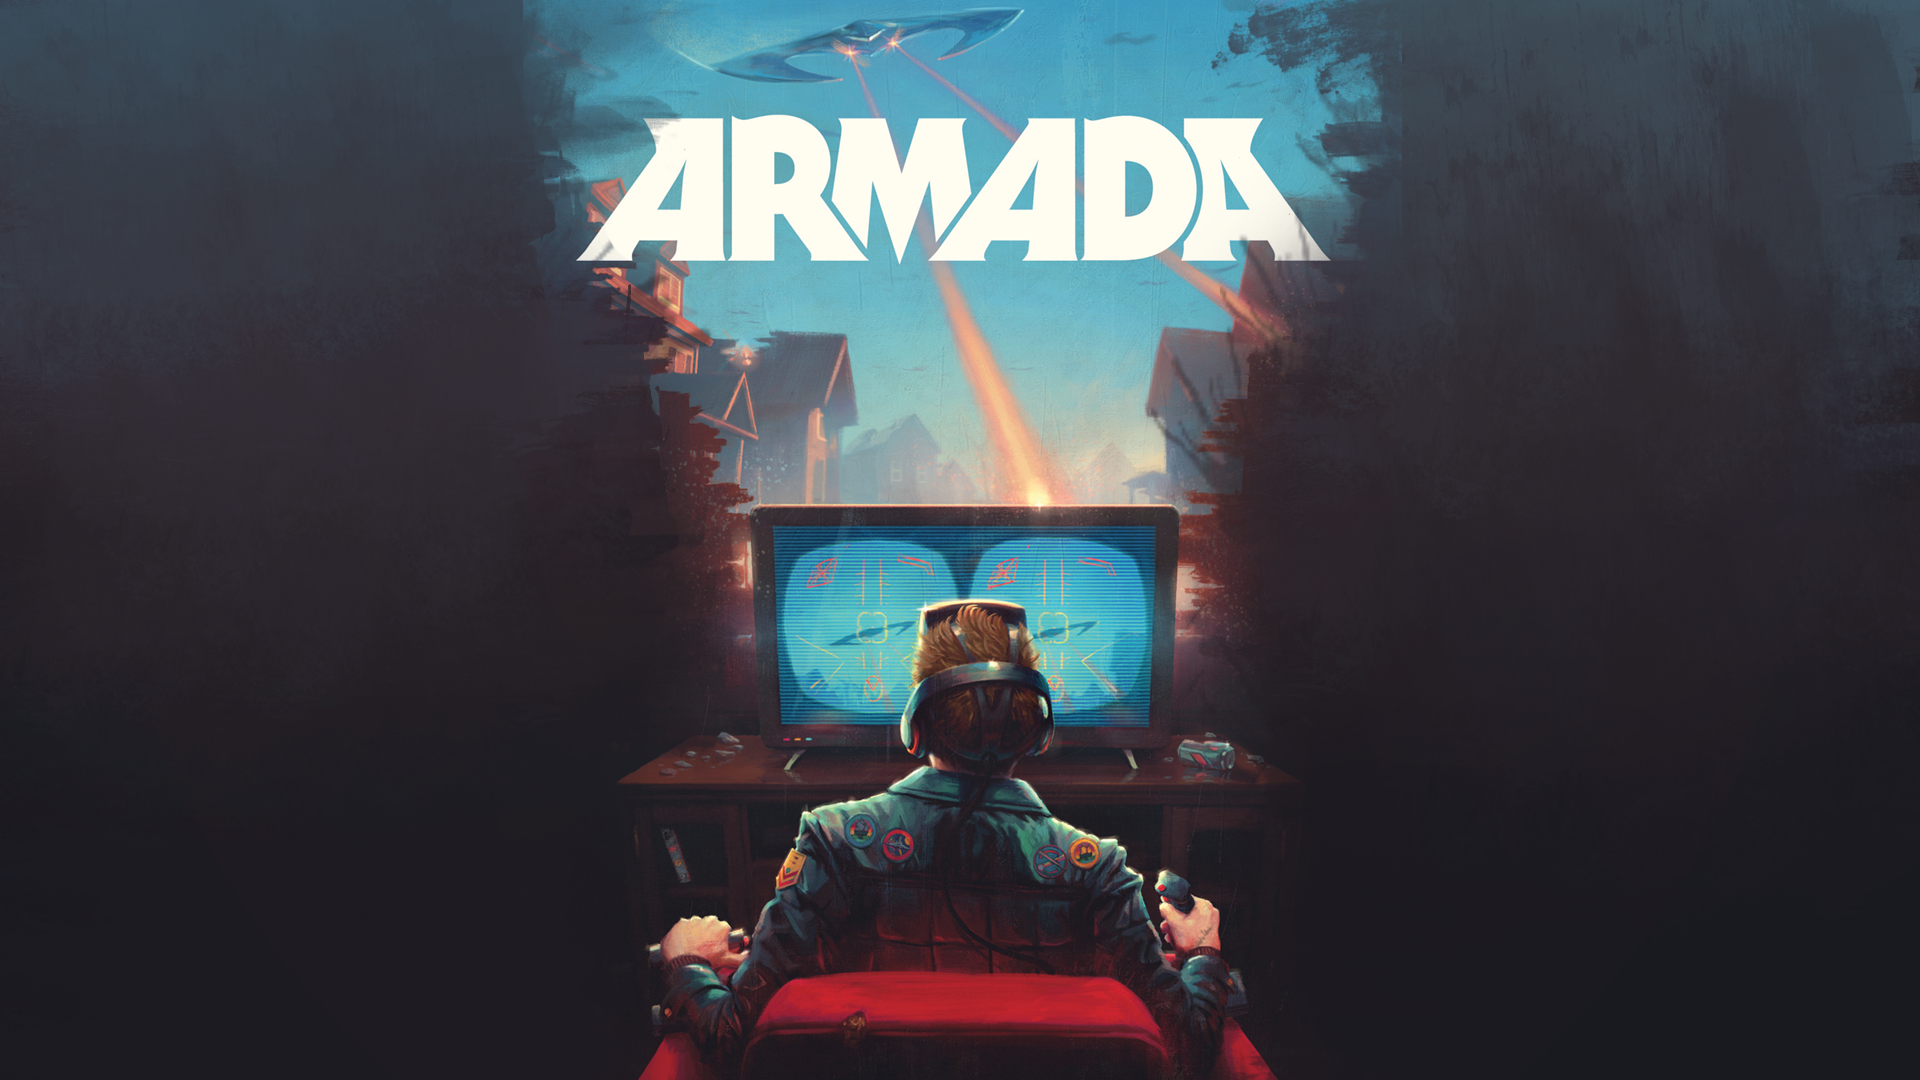 Wallpaper   Armada   Ernest Cline   Book Cover Illustration by 1920x1080